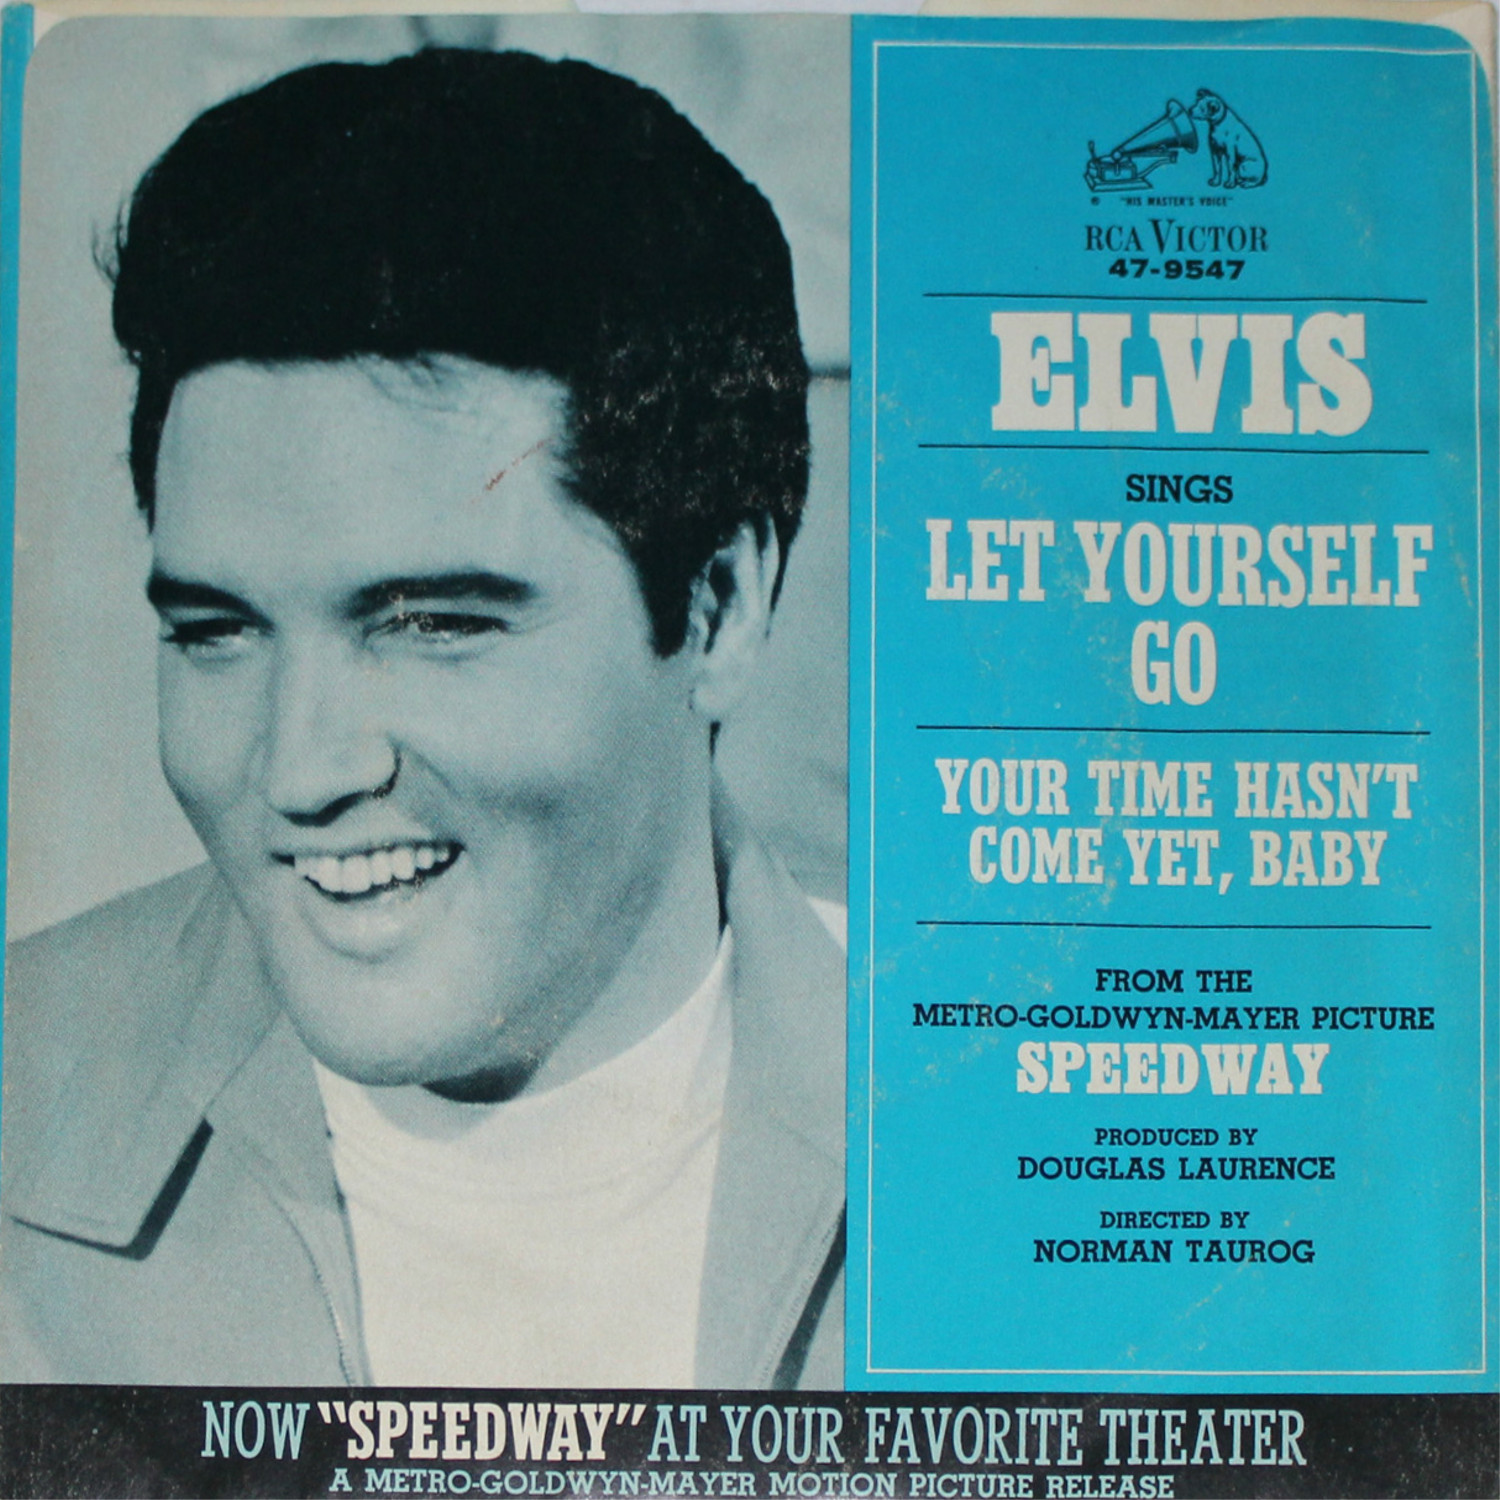 Your Time Hasn't Come Yet Baby / Let Yourself Go 47-9547b06sol